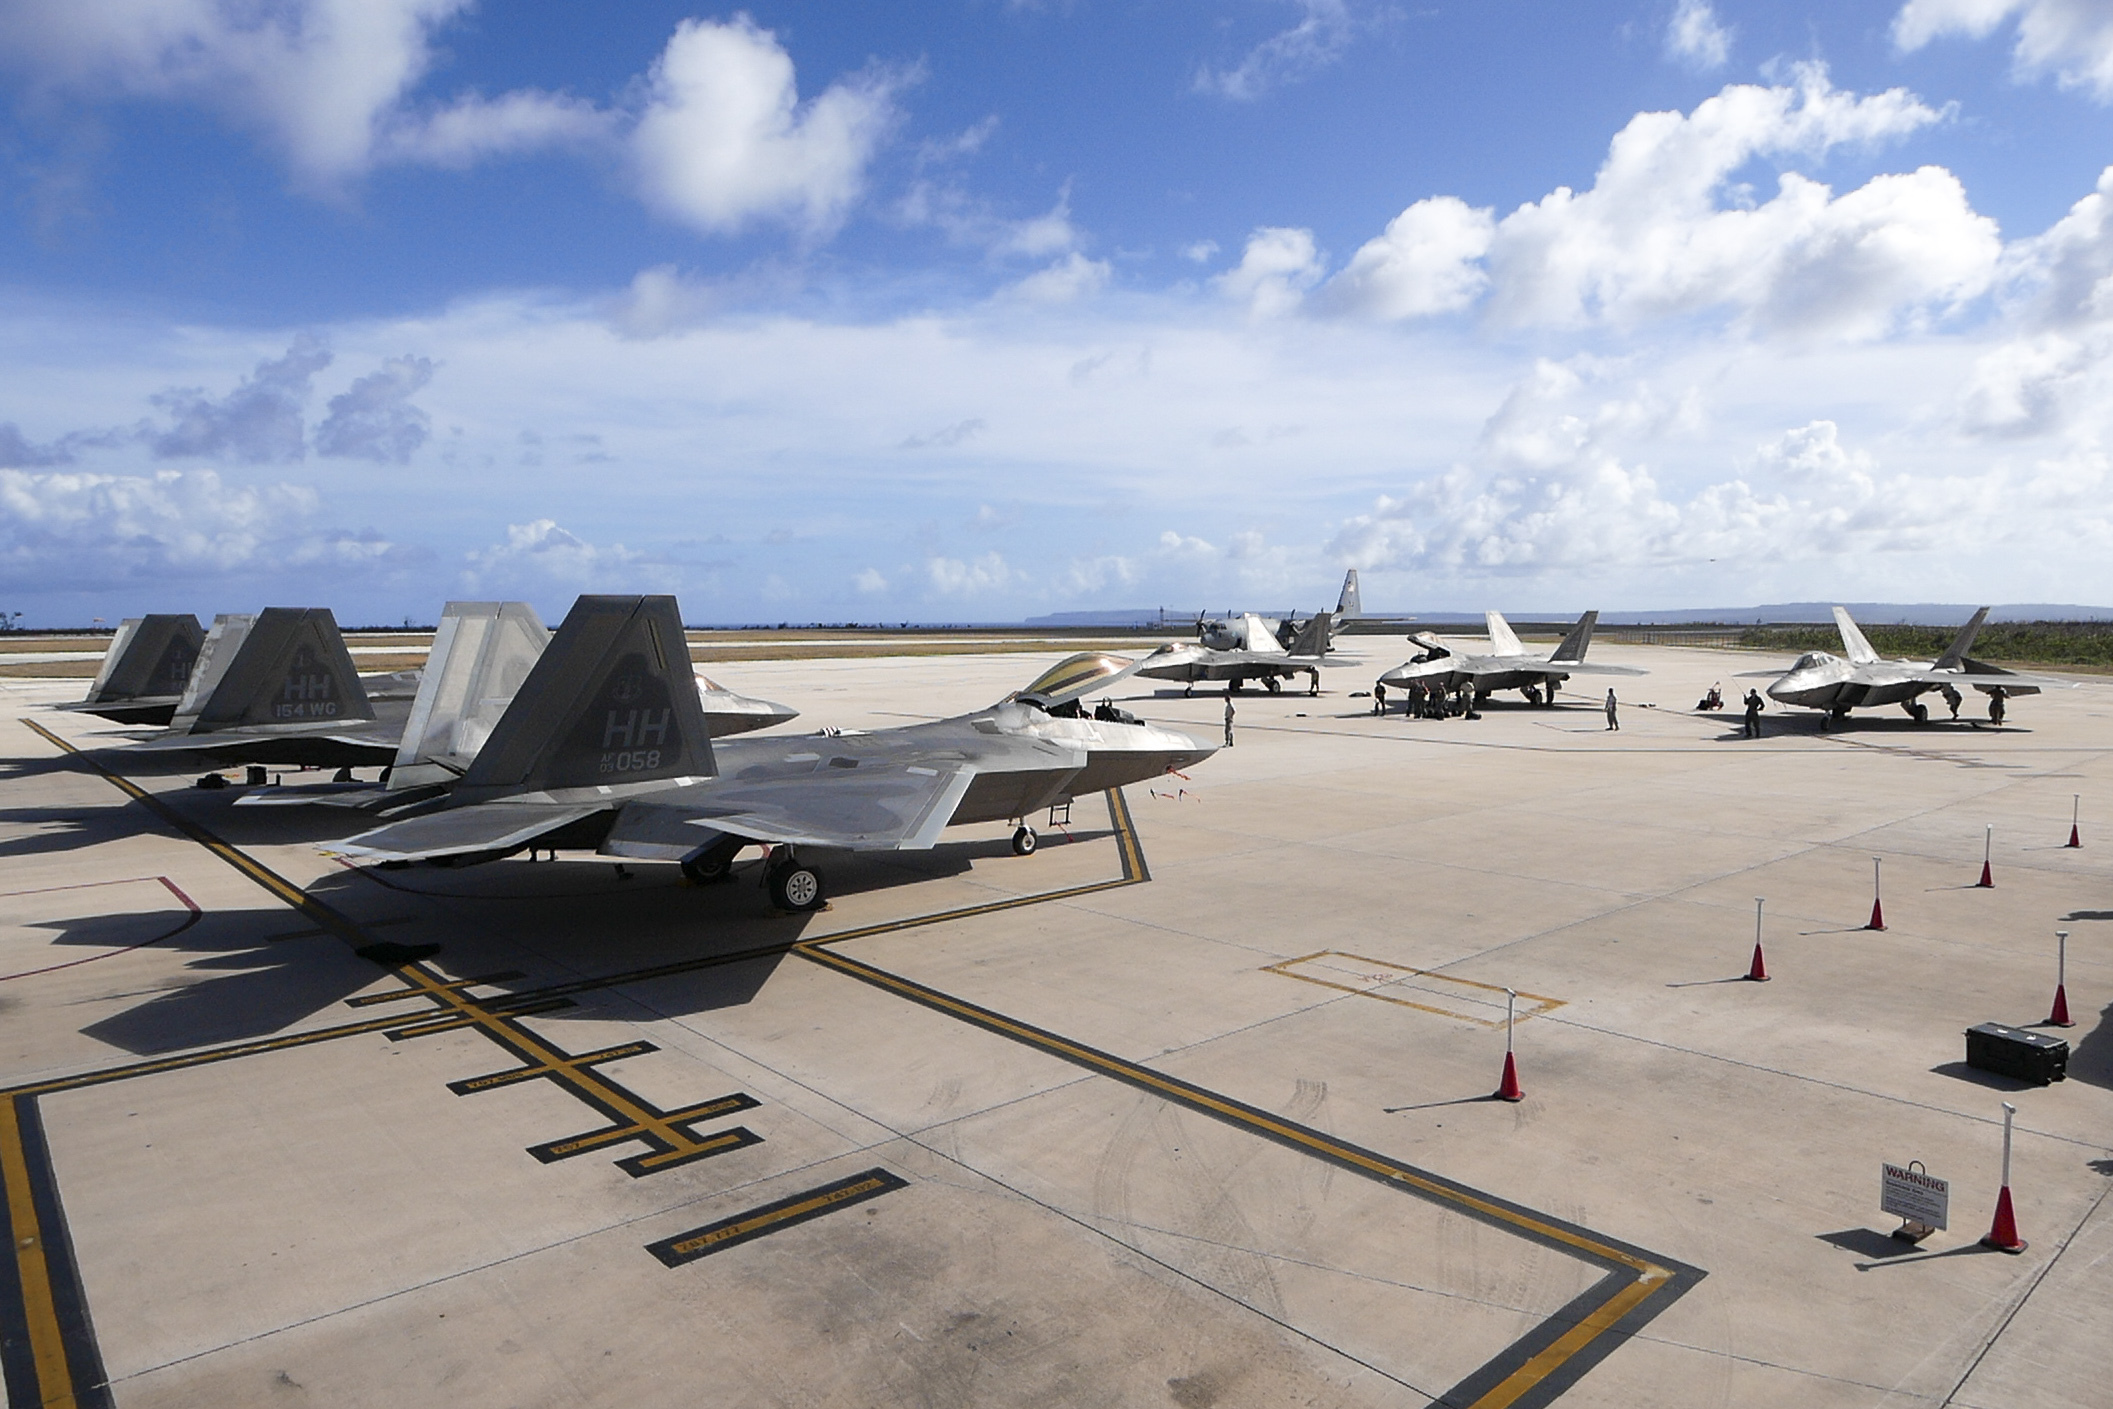 F-22 Raptors park during their inaugural appearance during exercise Resilient Typhoon, at the Francisco C. Ada International Airport, Saipan, April 23, 2019. (Senior Airman John Linzmeier/Air Force)